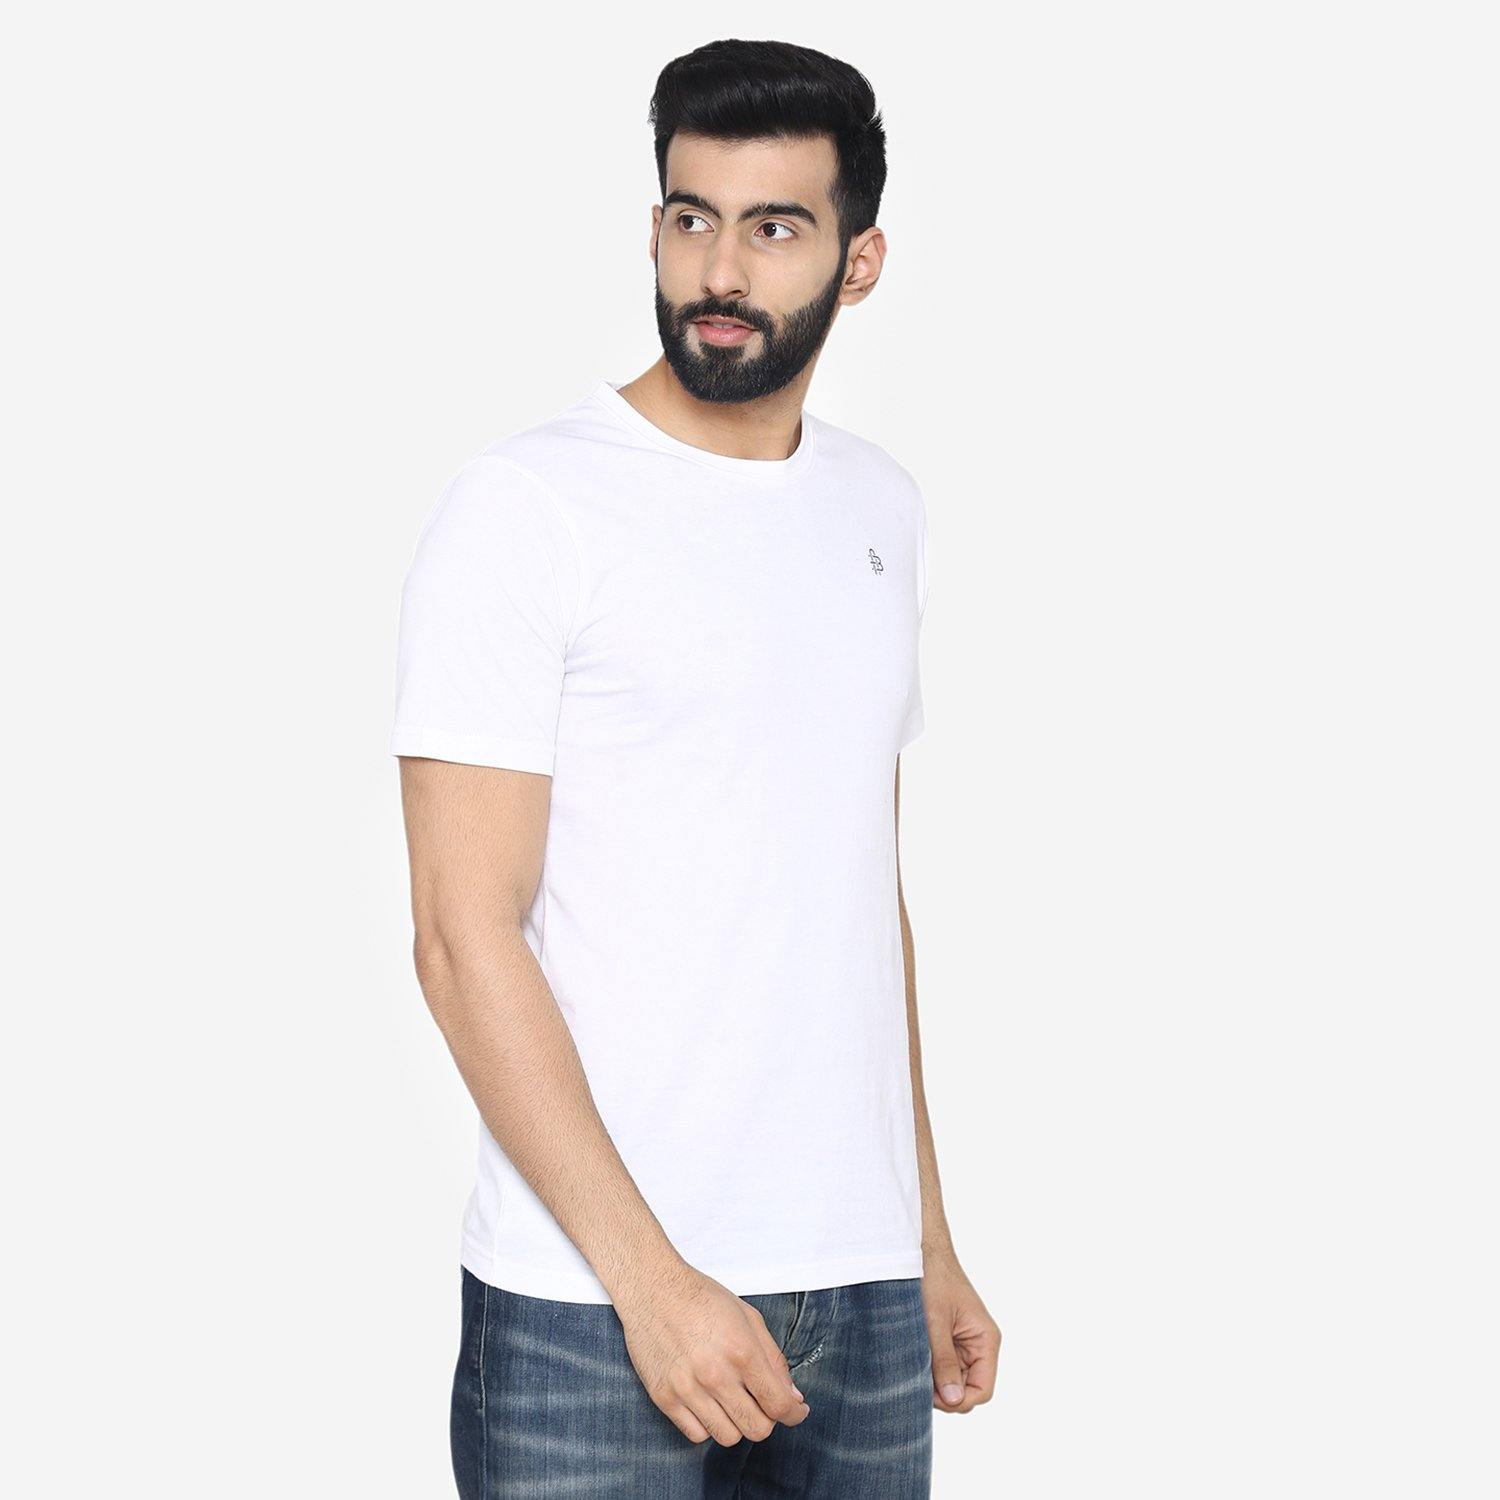 Men's Plain Half Sleeve Casual T-Shirt for Summer